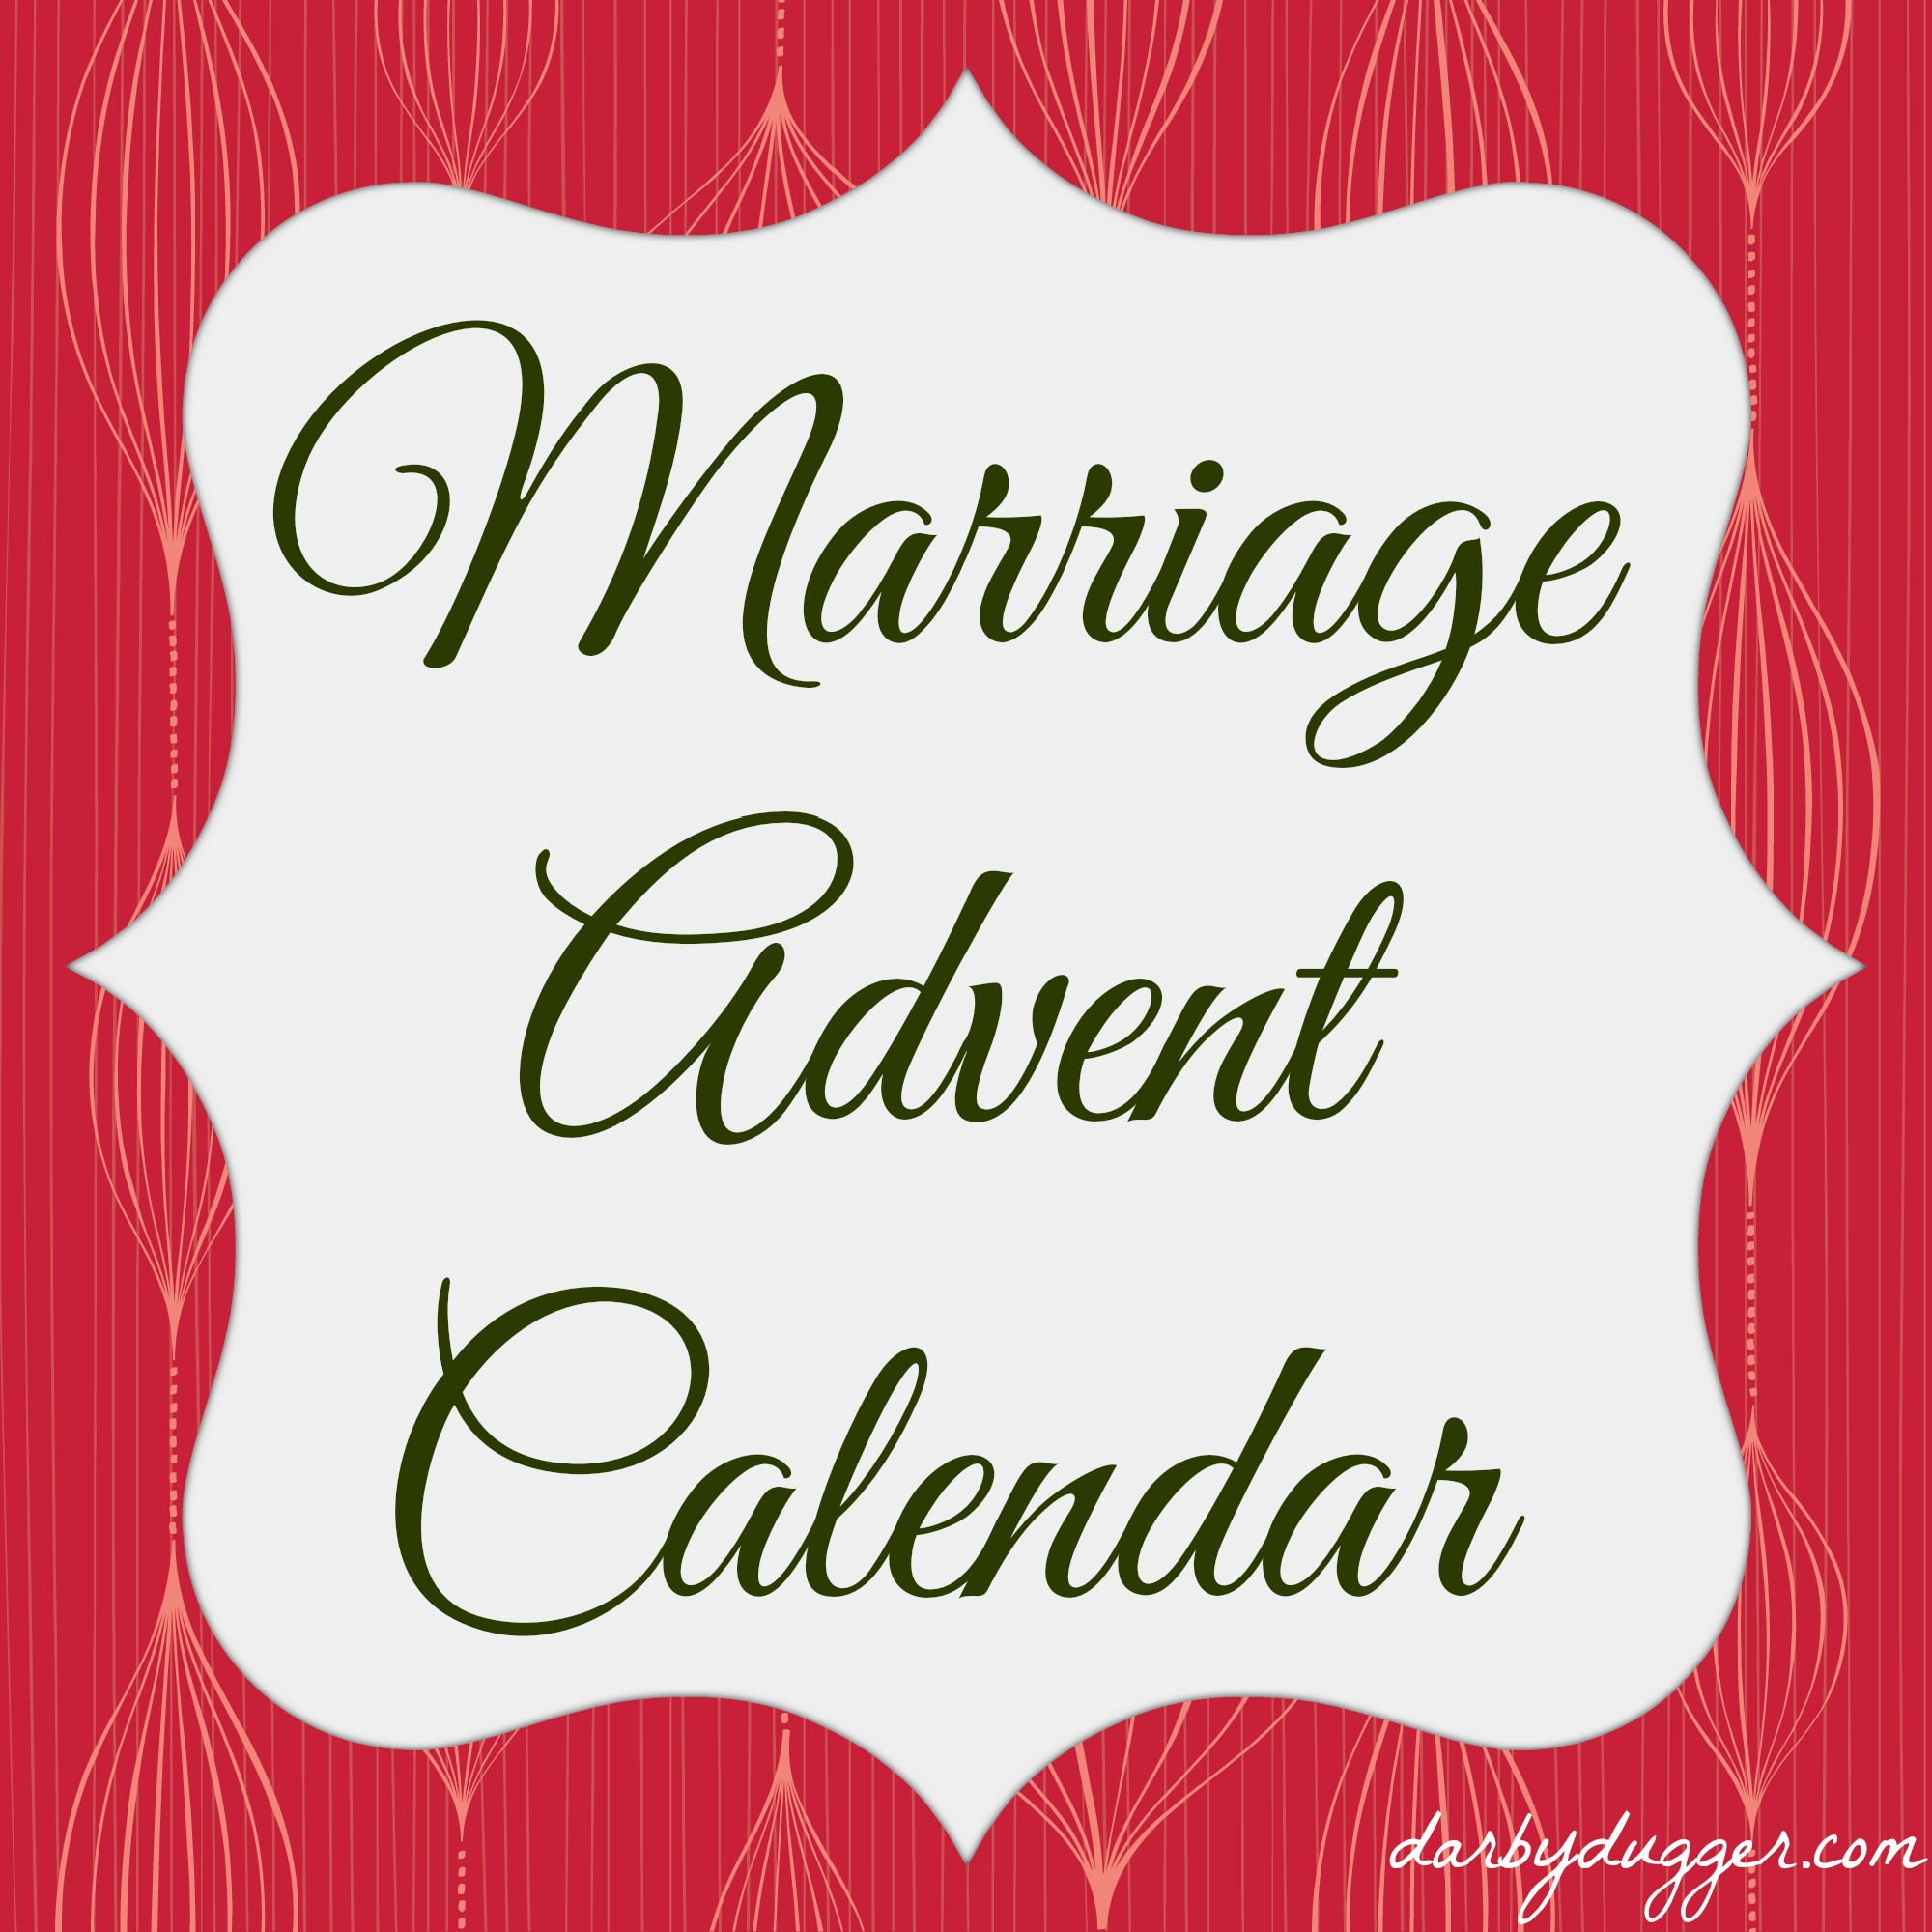 Calendar Ideas For Husband : Marriage advent calendar by darby dugger